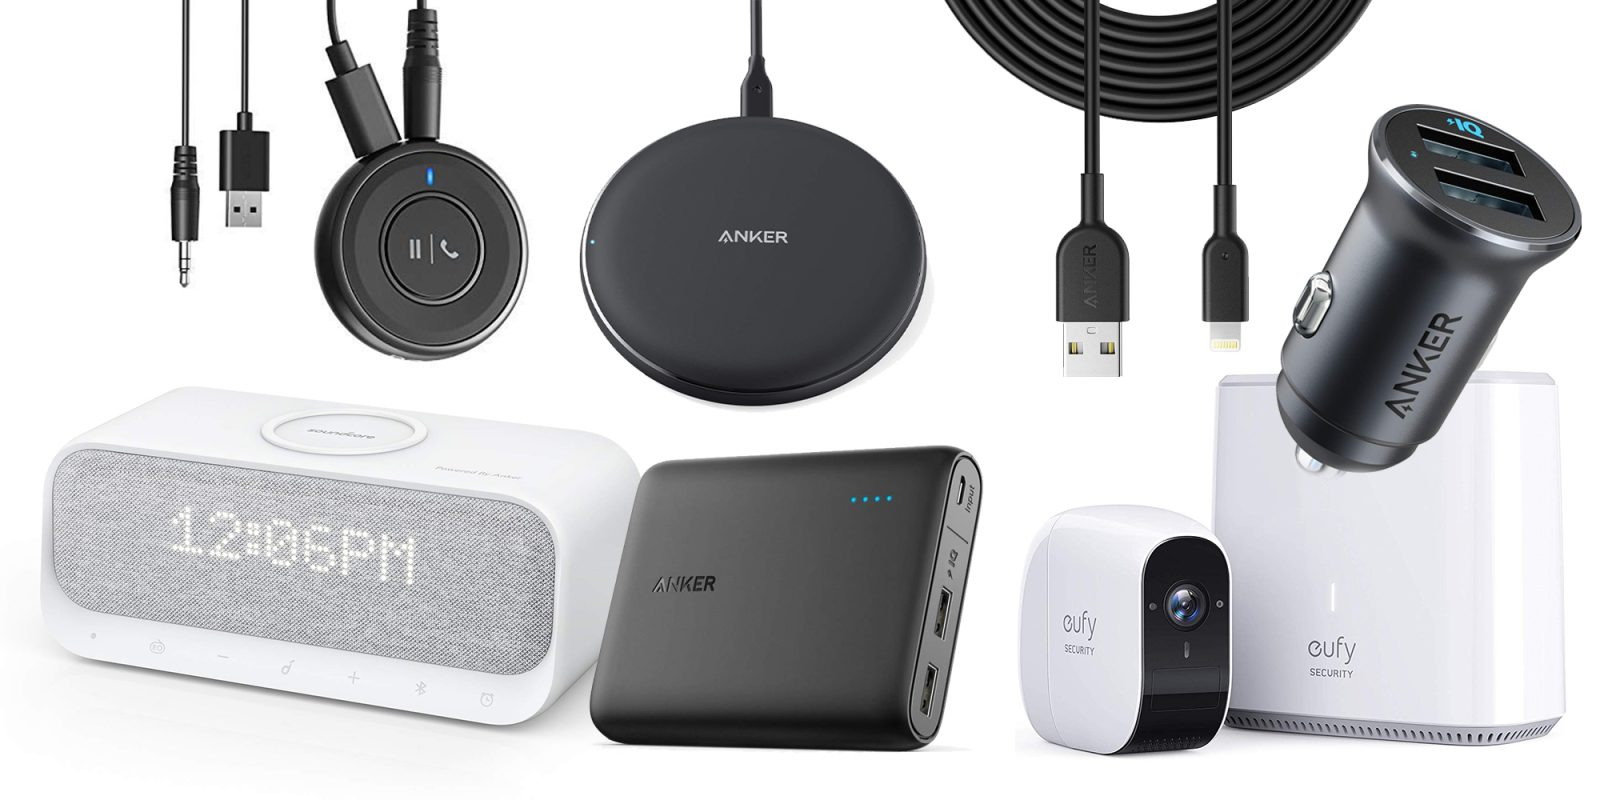 Anker Summer Sale has Android accessories from $10, Sony Xperia XZ2 Compact $250, more